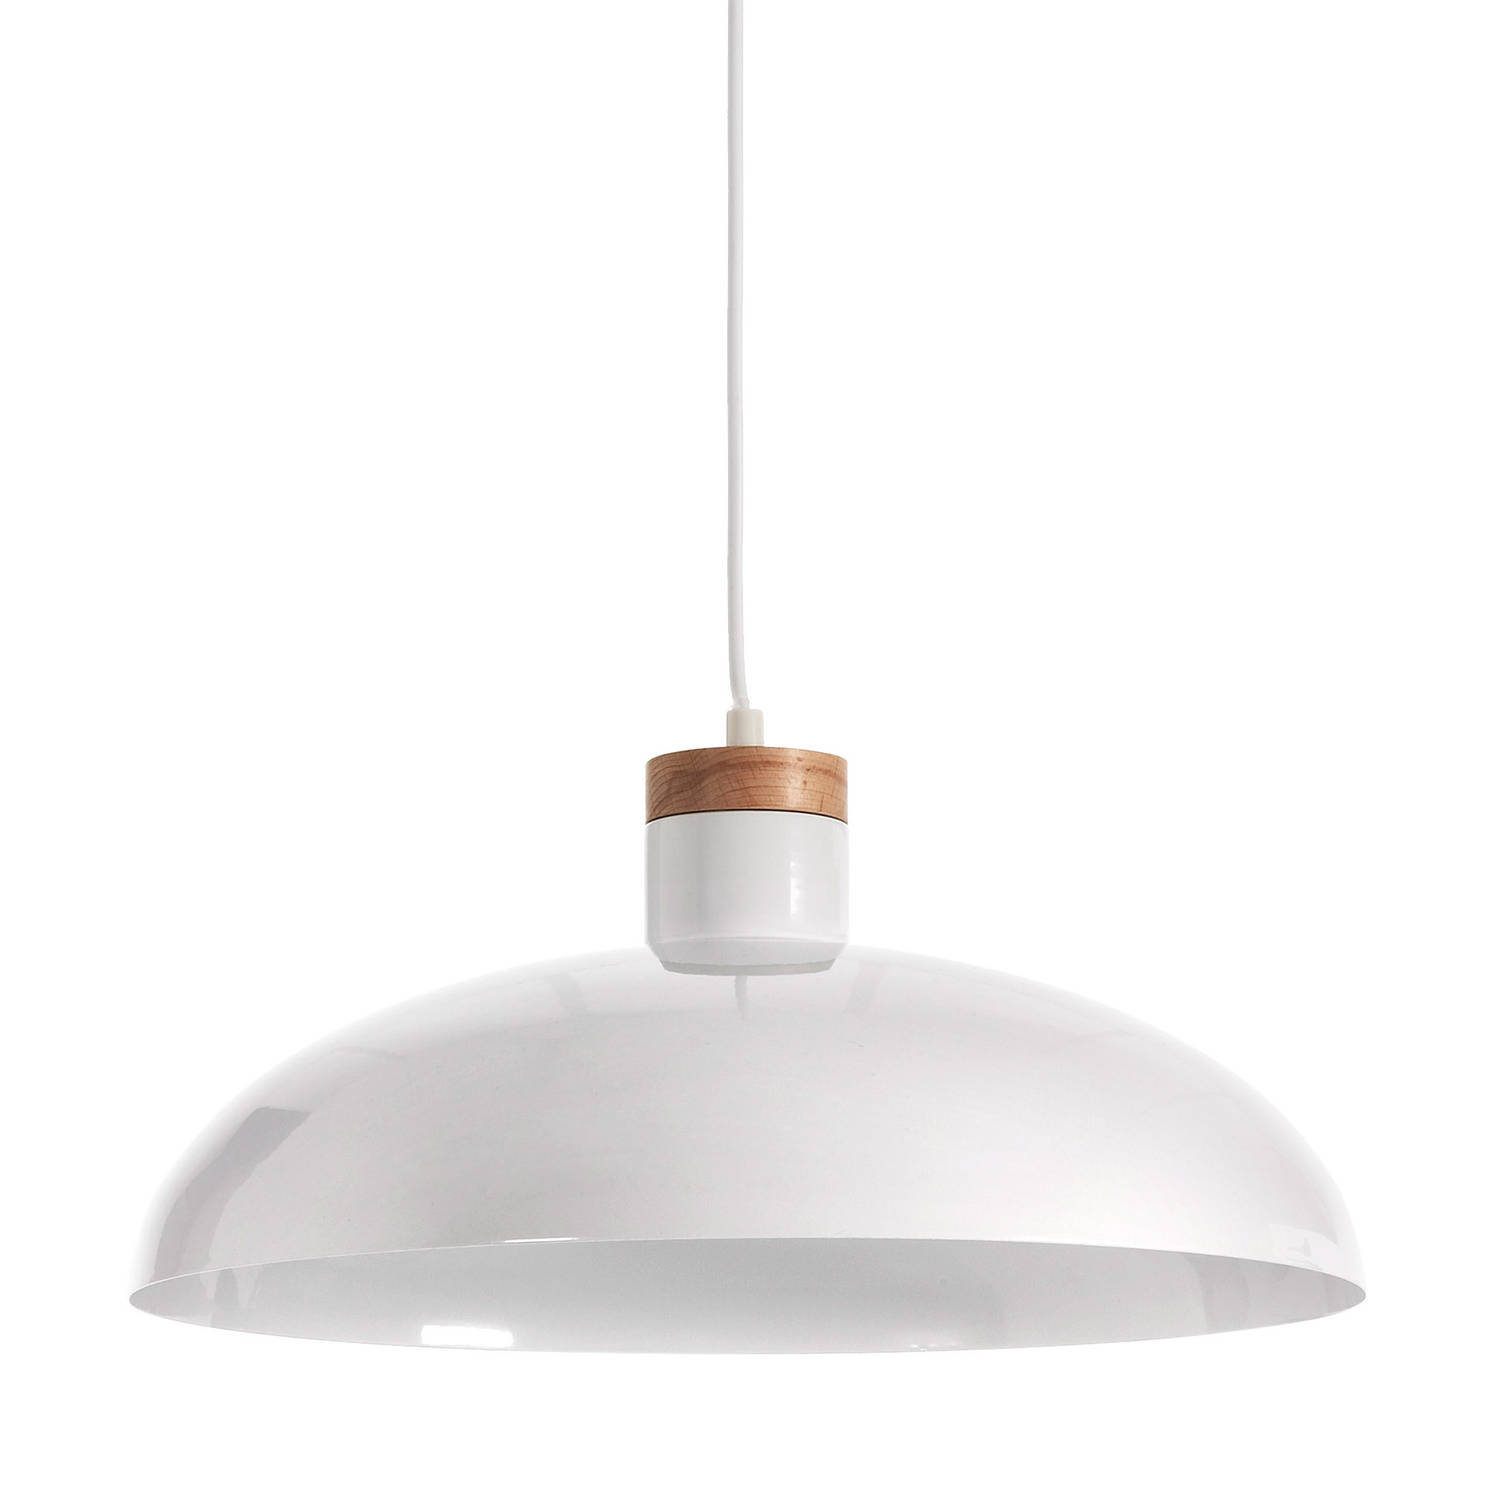 Laforma - margot hanglamp - wit